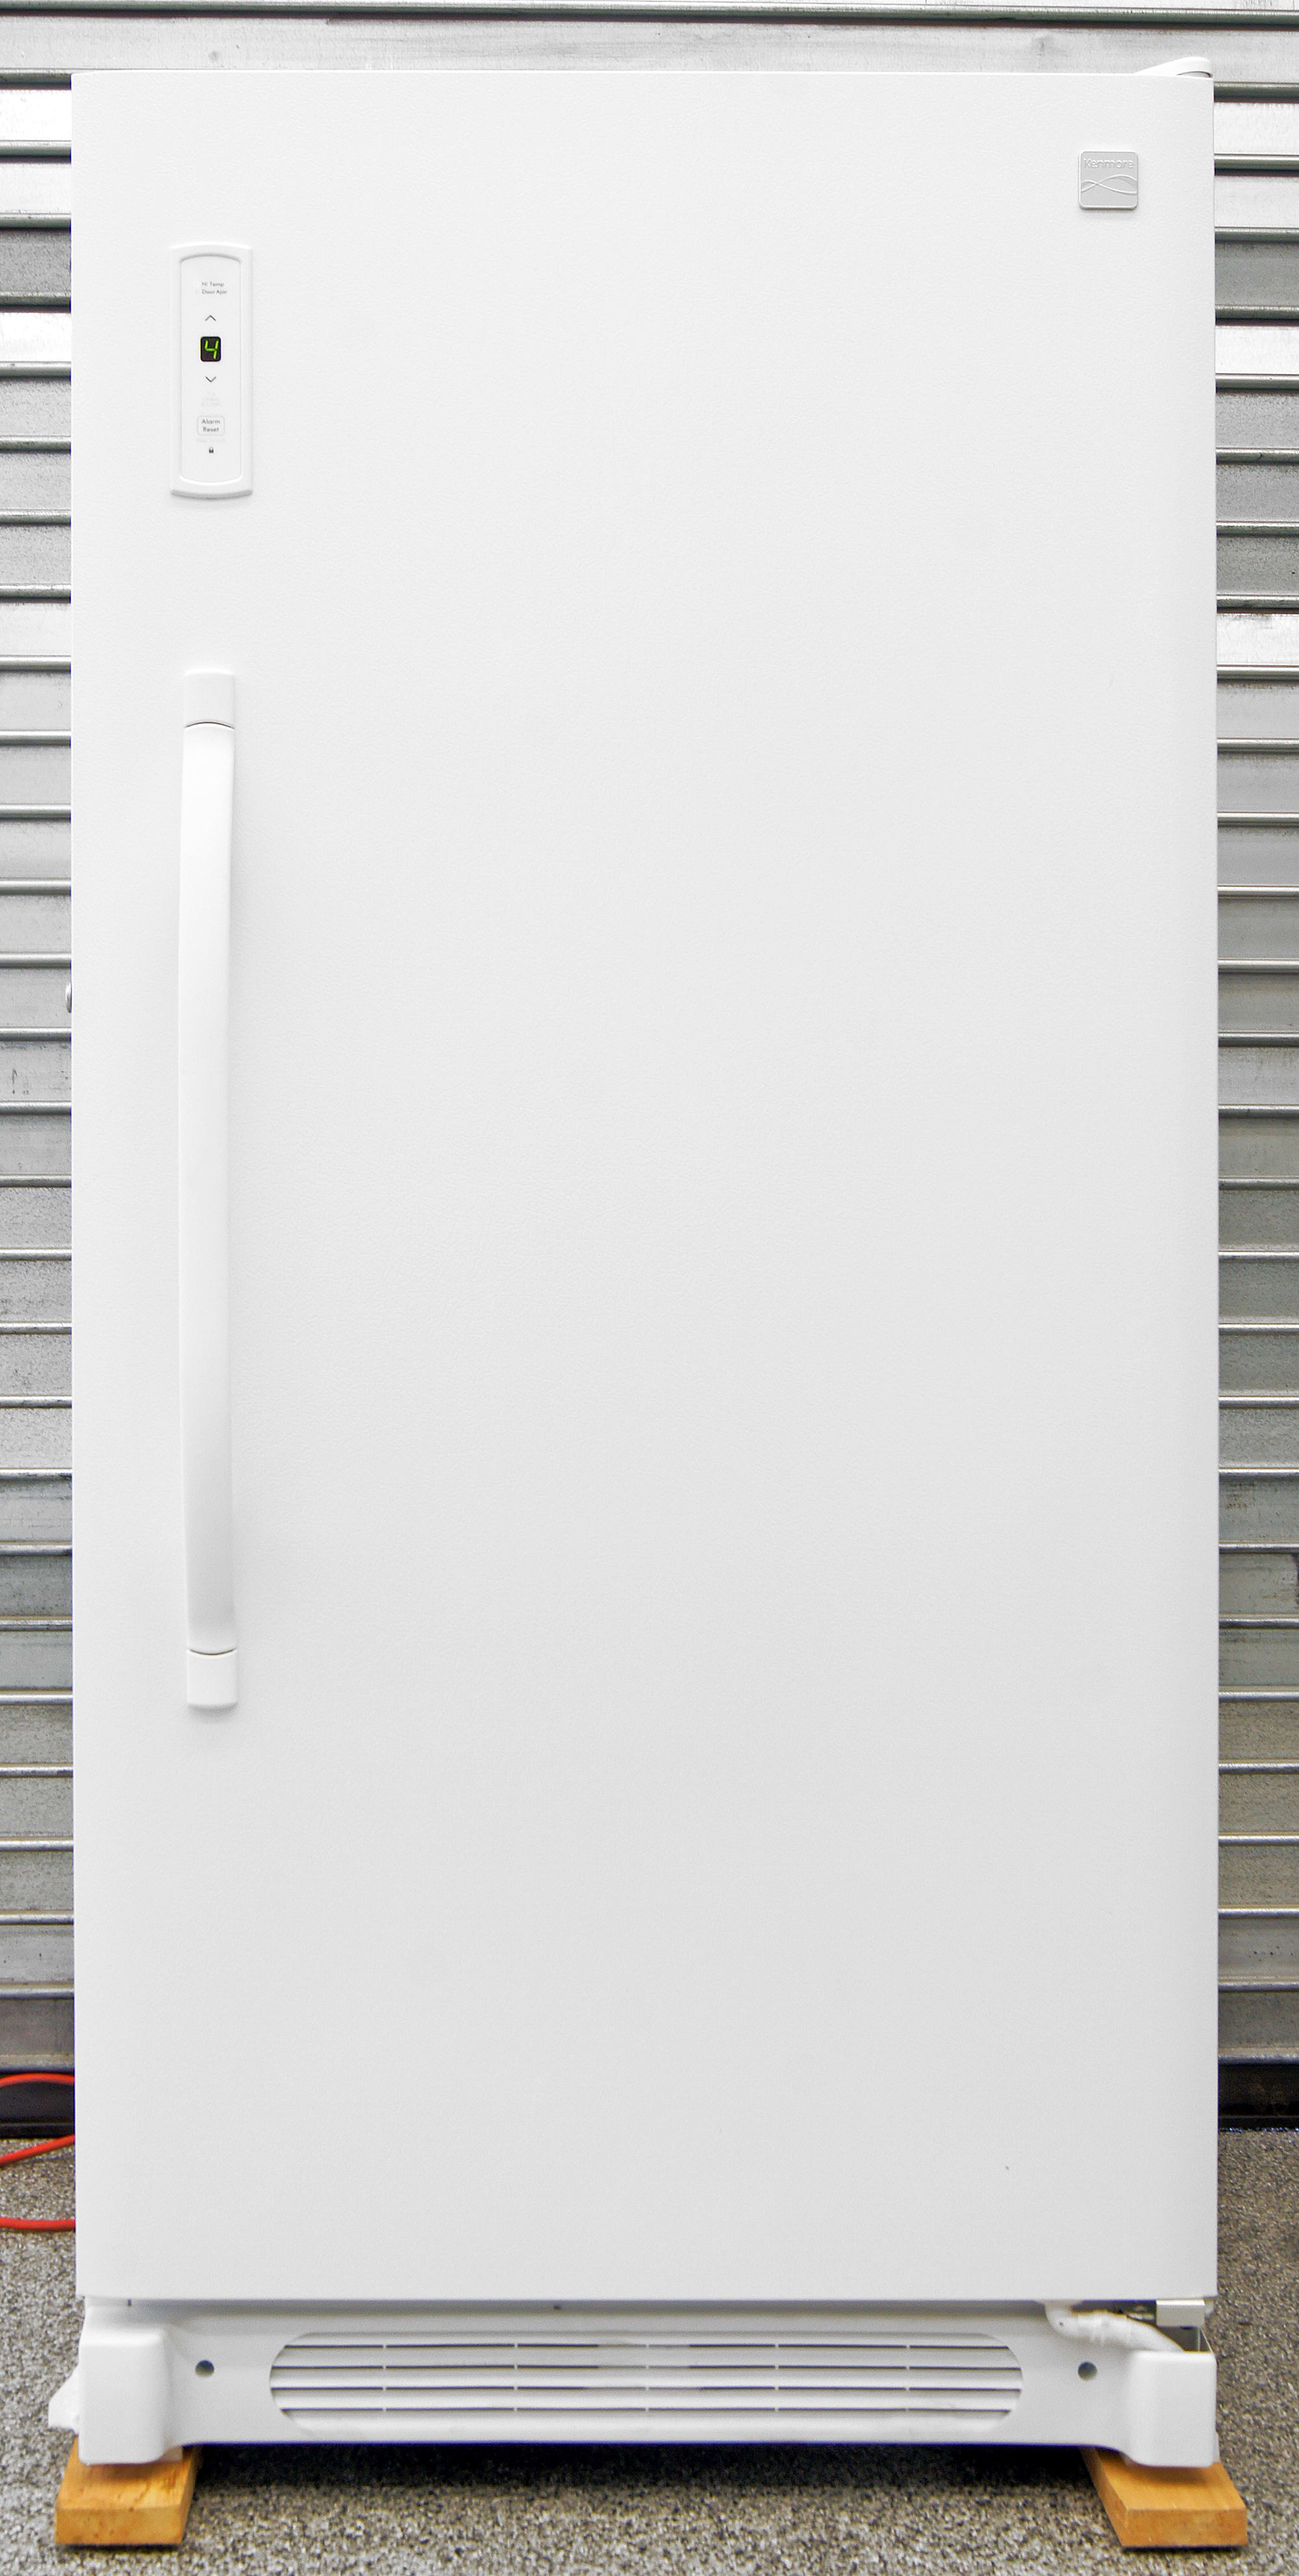 The basic Kenmore 28432 white upright is incredibly affordable, but might not be worth the extra savings.